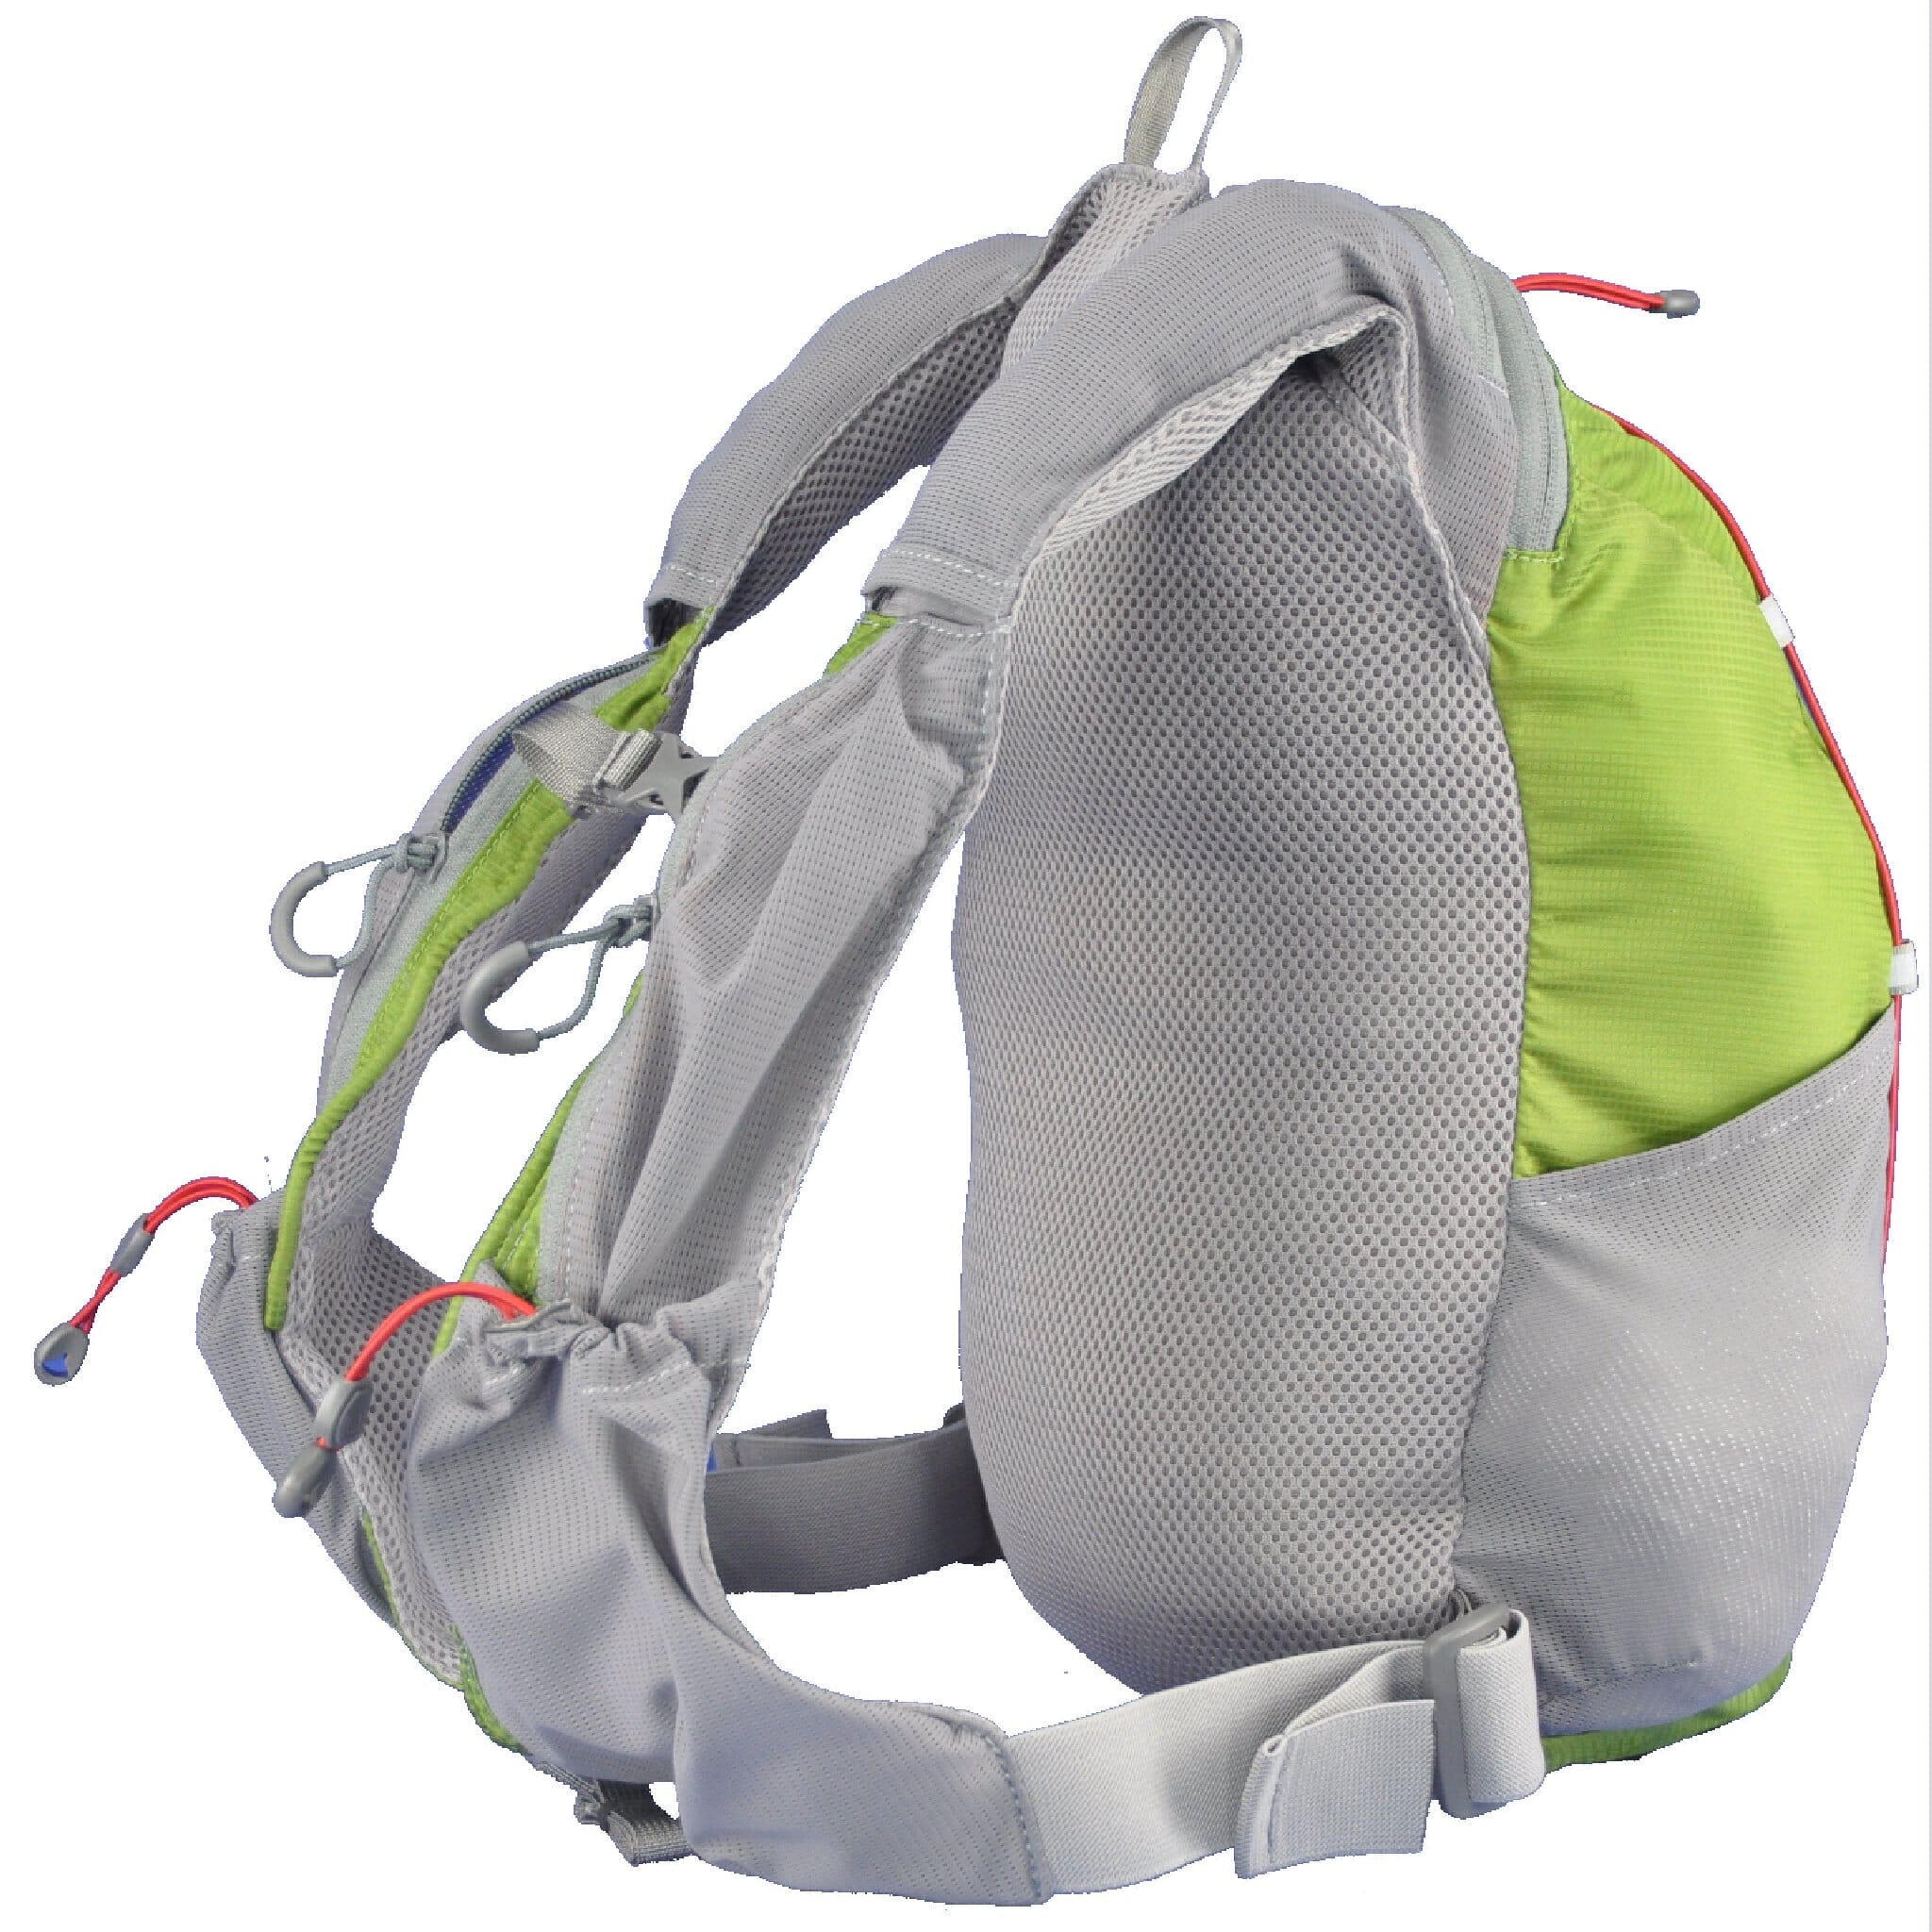 Aarn Hydro Light 12 backpack